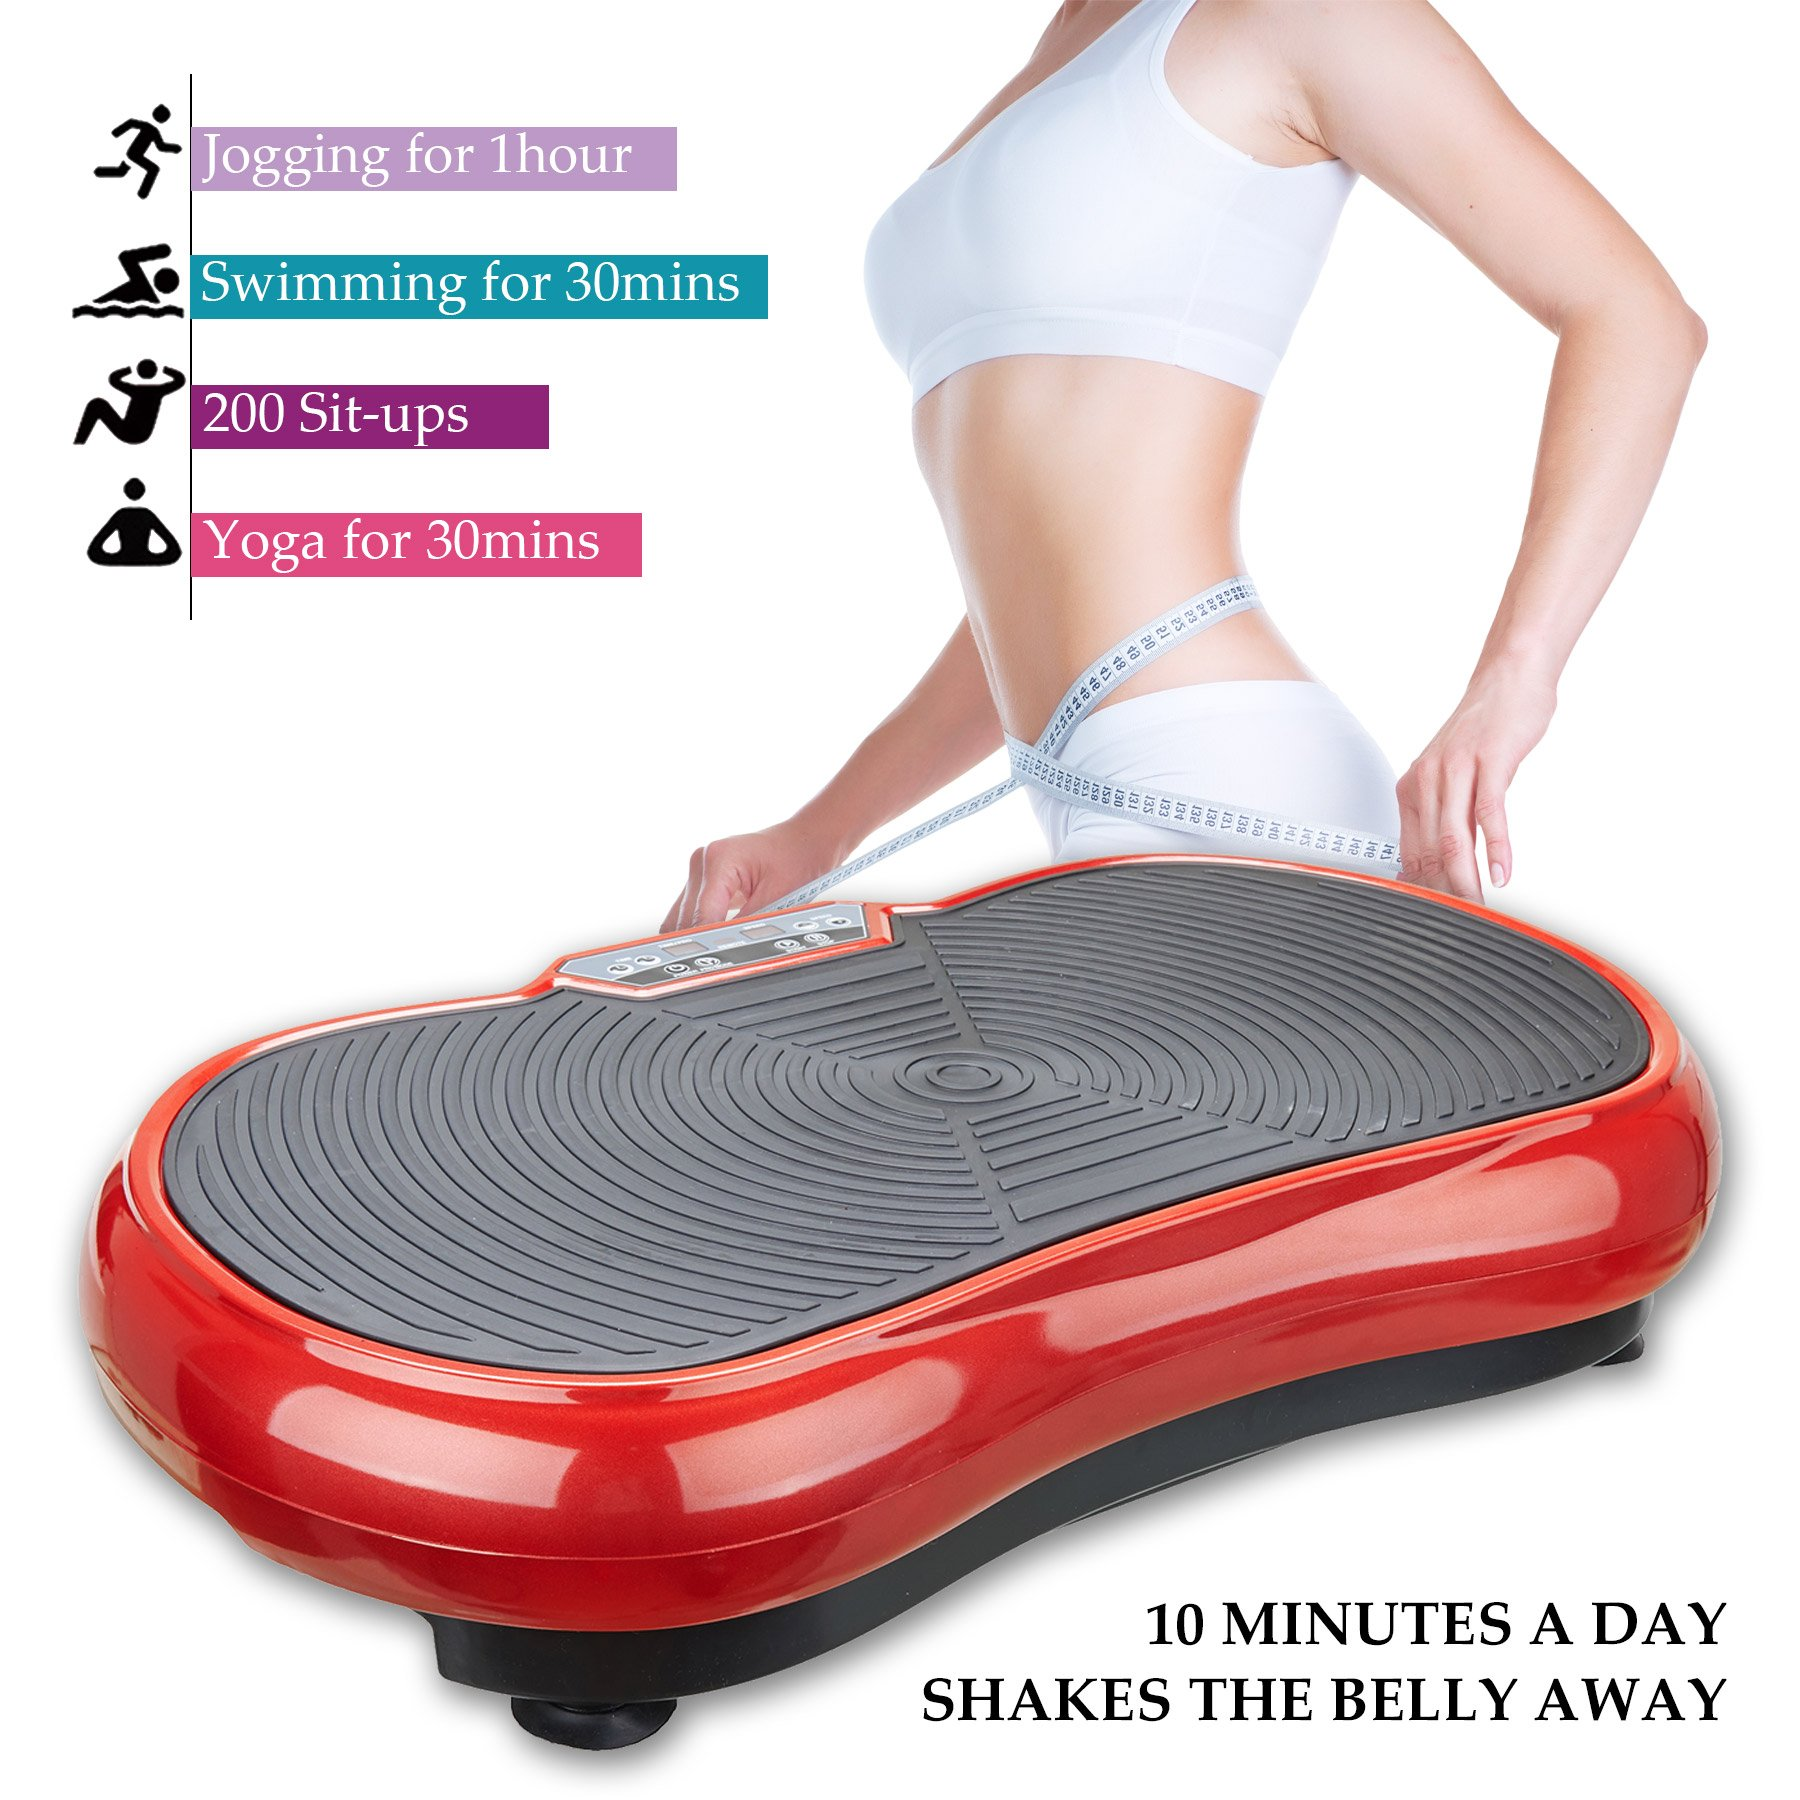 Pinty Fitness Vibration Platform - Whole Body Vibration Machine Crazy Fit Vibration Plate with Remote Control and Resistance Bands by Pinty (Image #6)